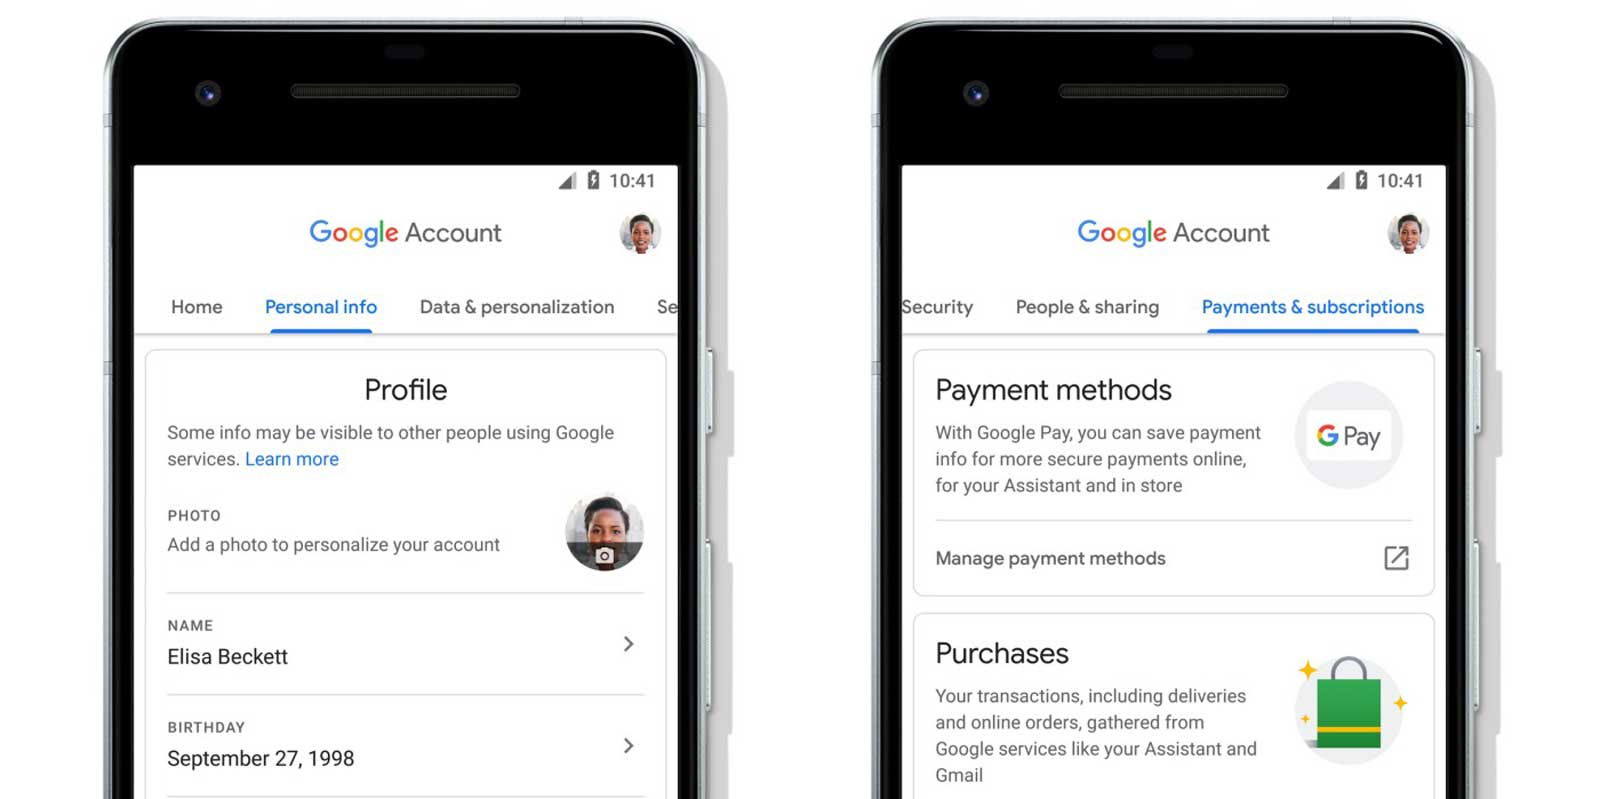 Google makes it easier to manage your account on Android